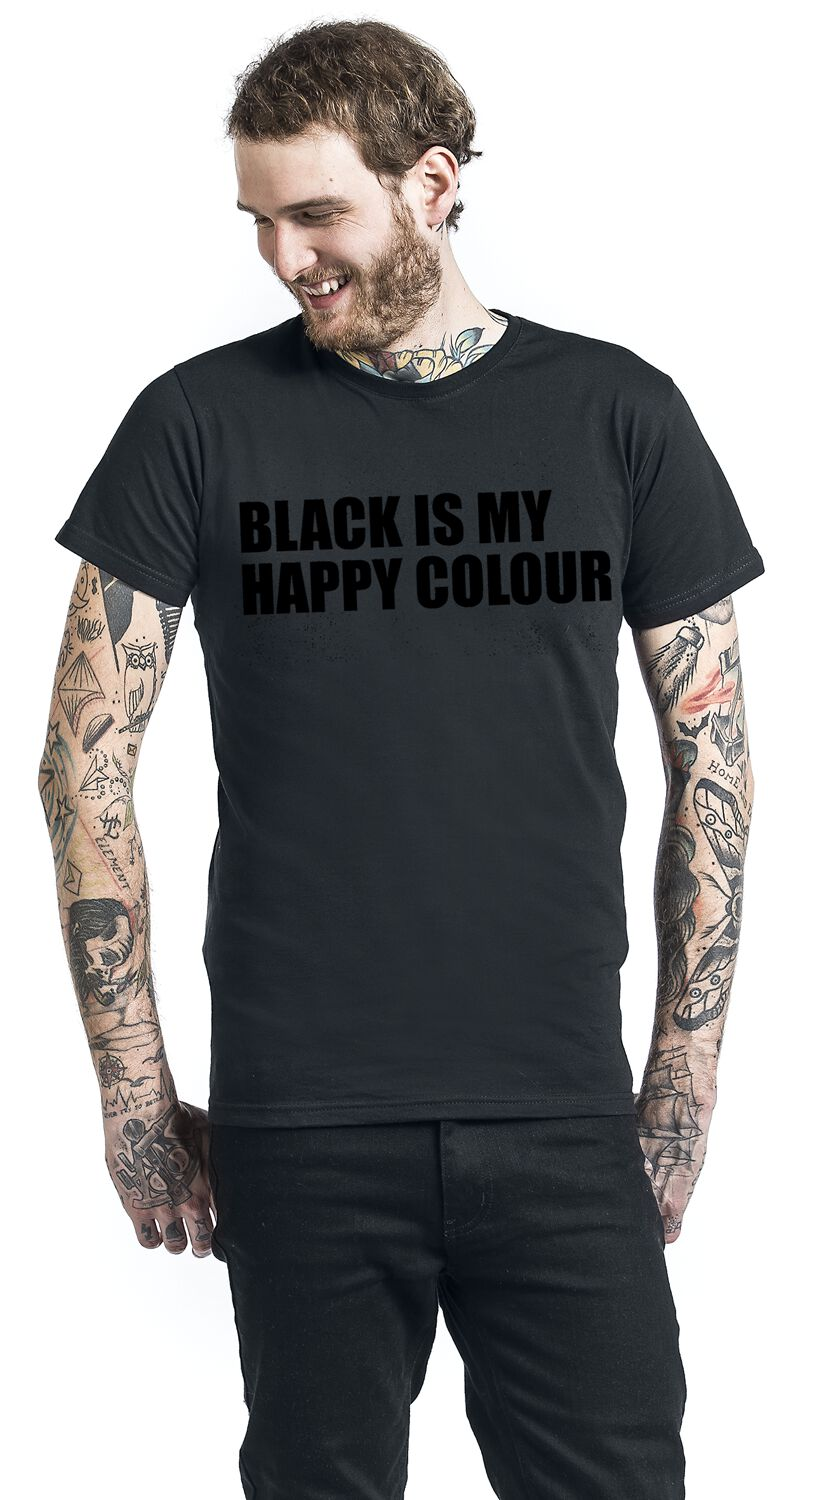 black is my happy colour camiseta emp. Black Bedroom Furniture Sets. Home Design Ideas